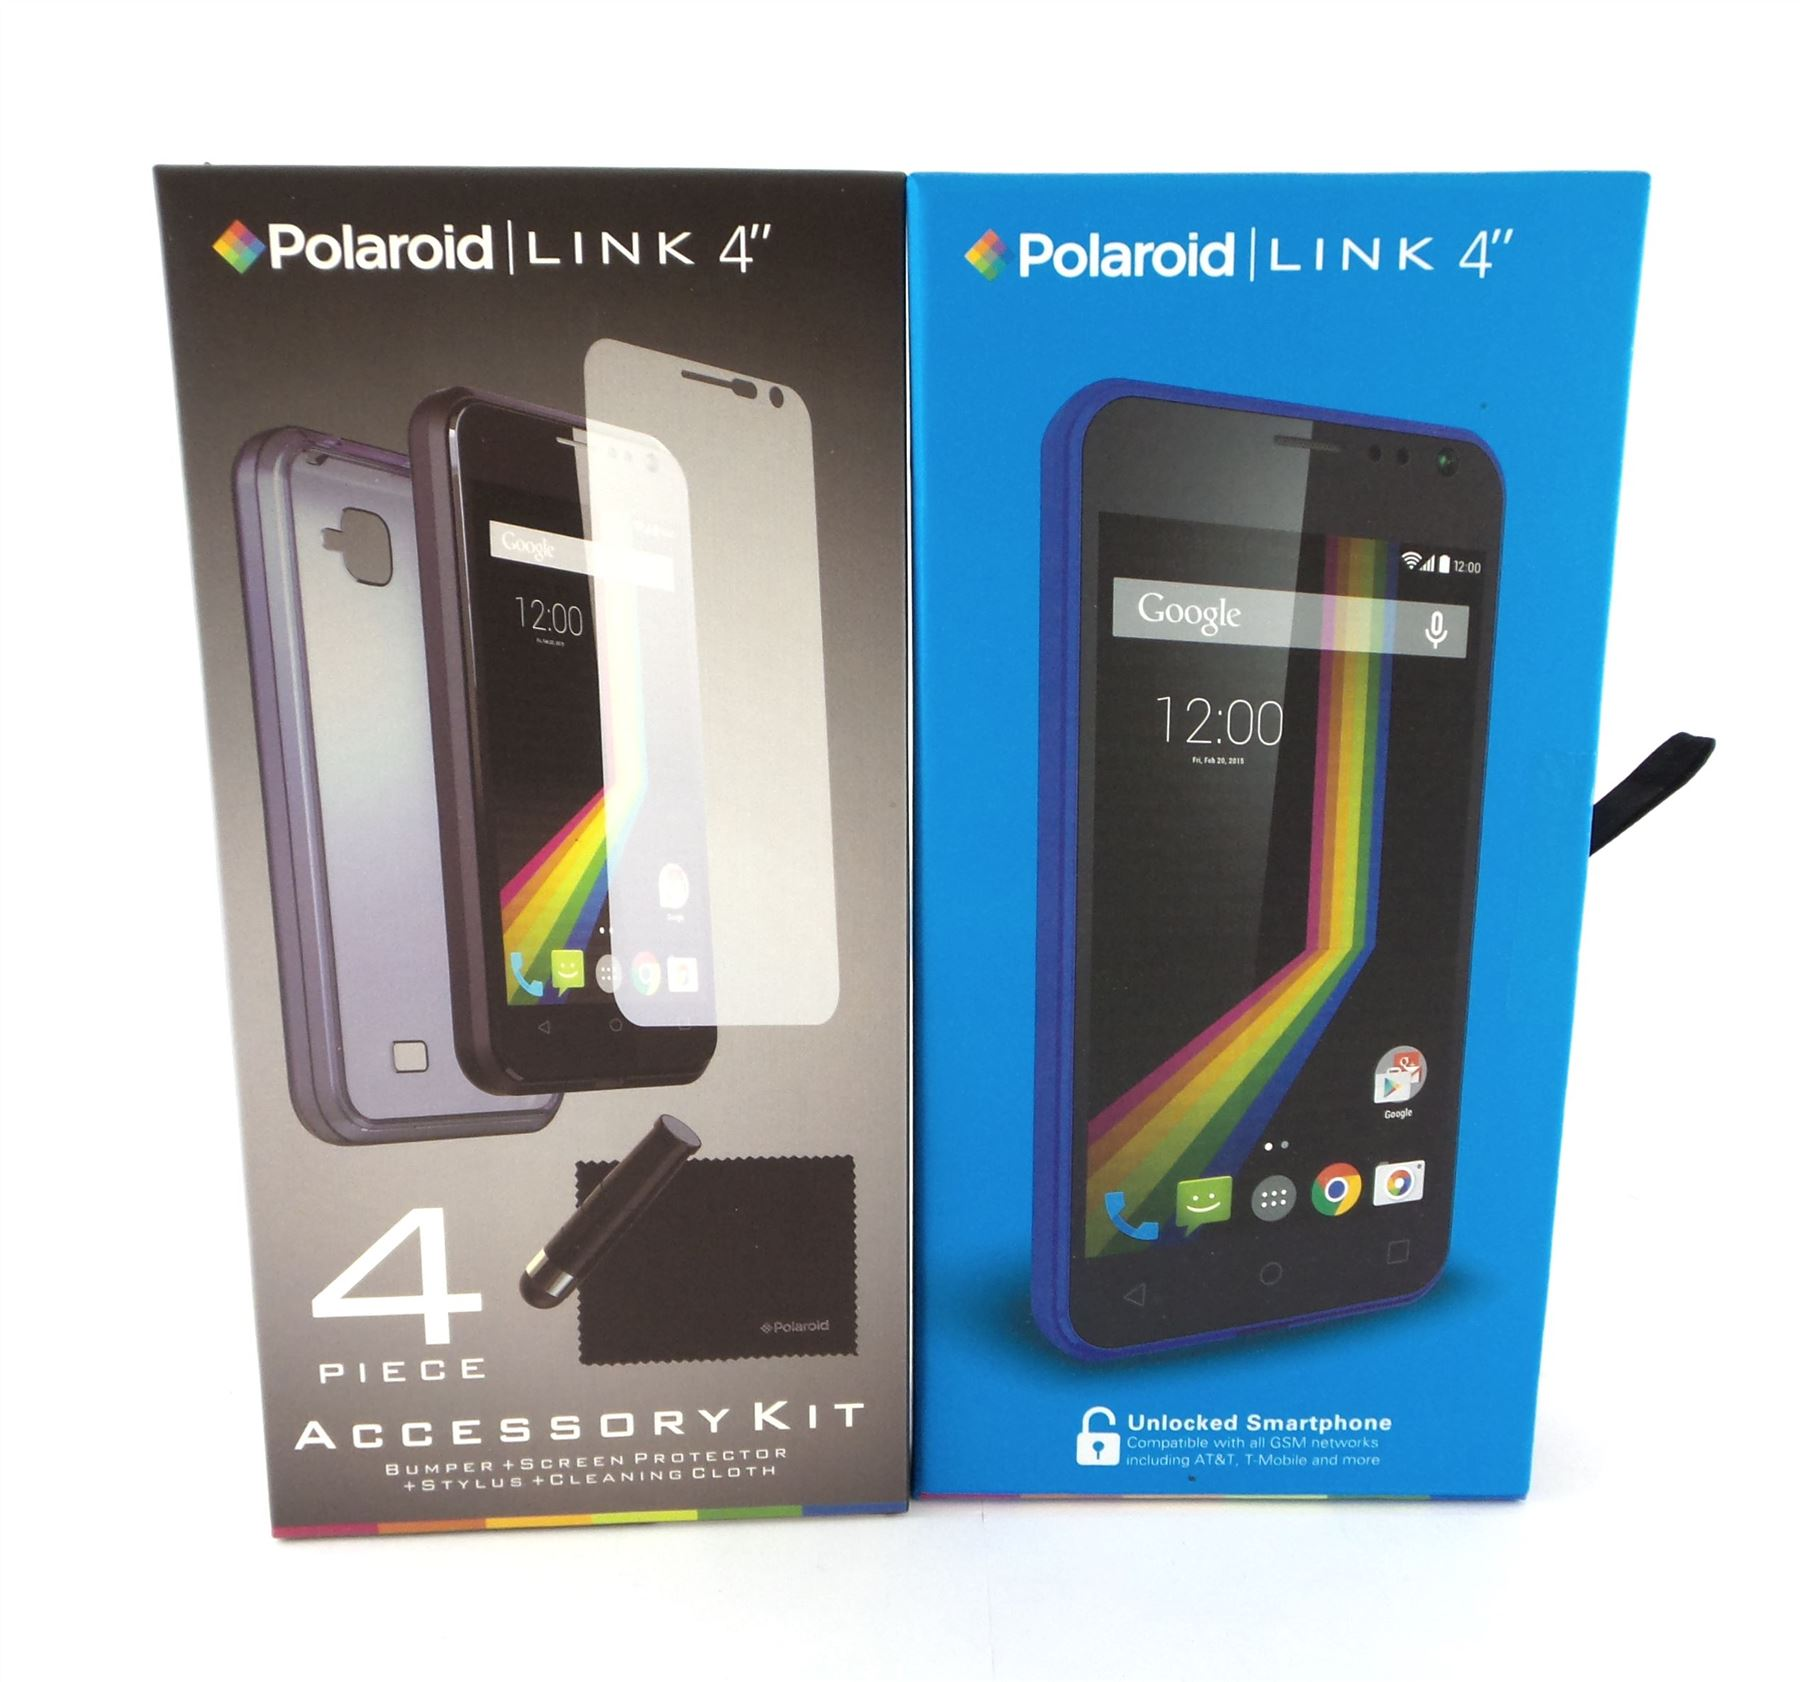 "Polaroid LINK 4"" 4G Unlocked Android Smartphone 4GB Blue A4K BL New"